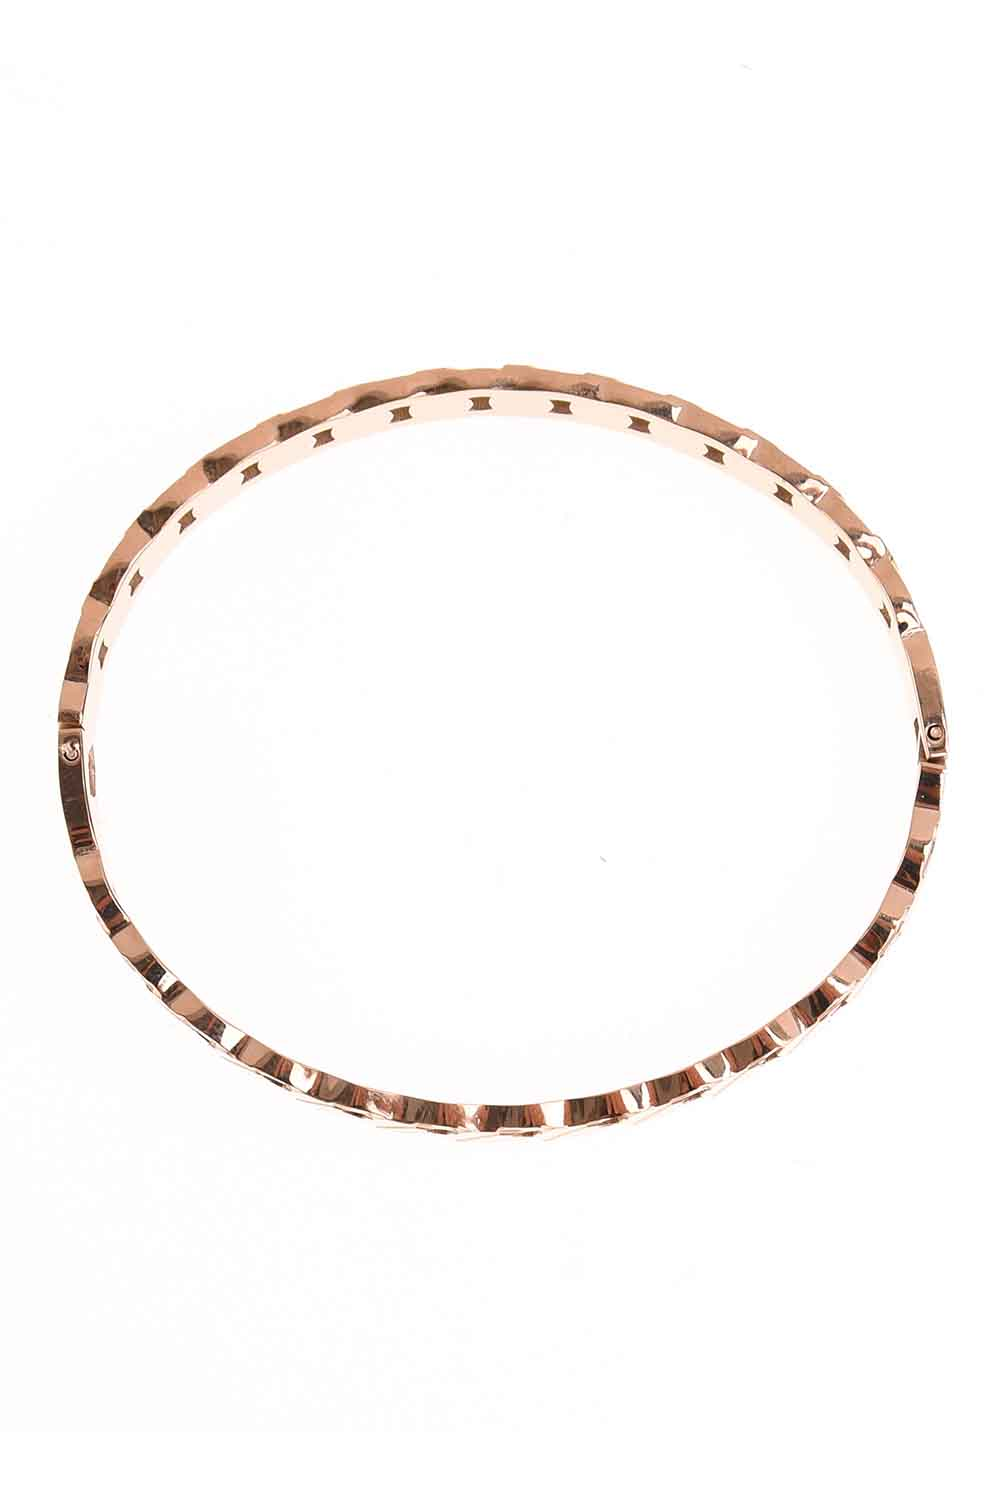 MIZALLE Chain Patterned Steel Bracelet (St) (1)